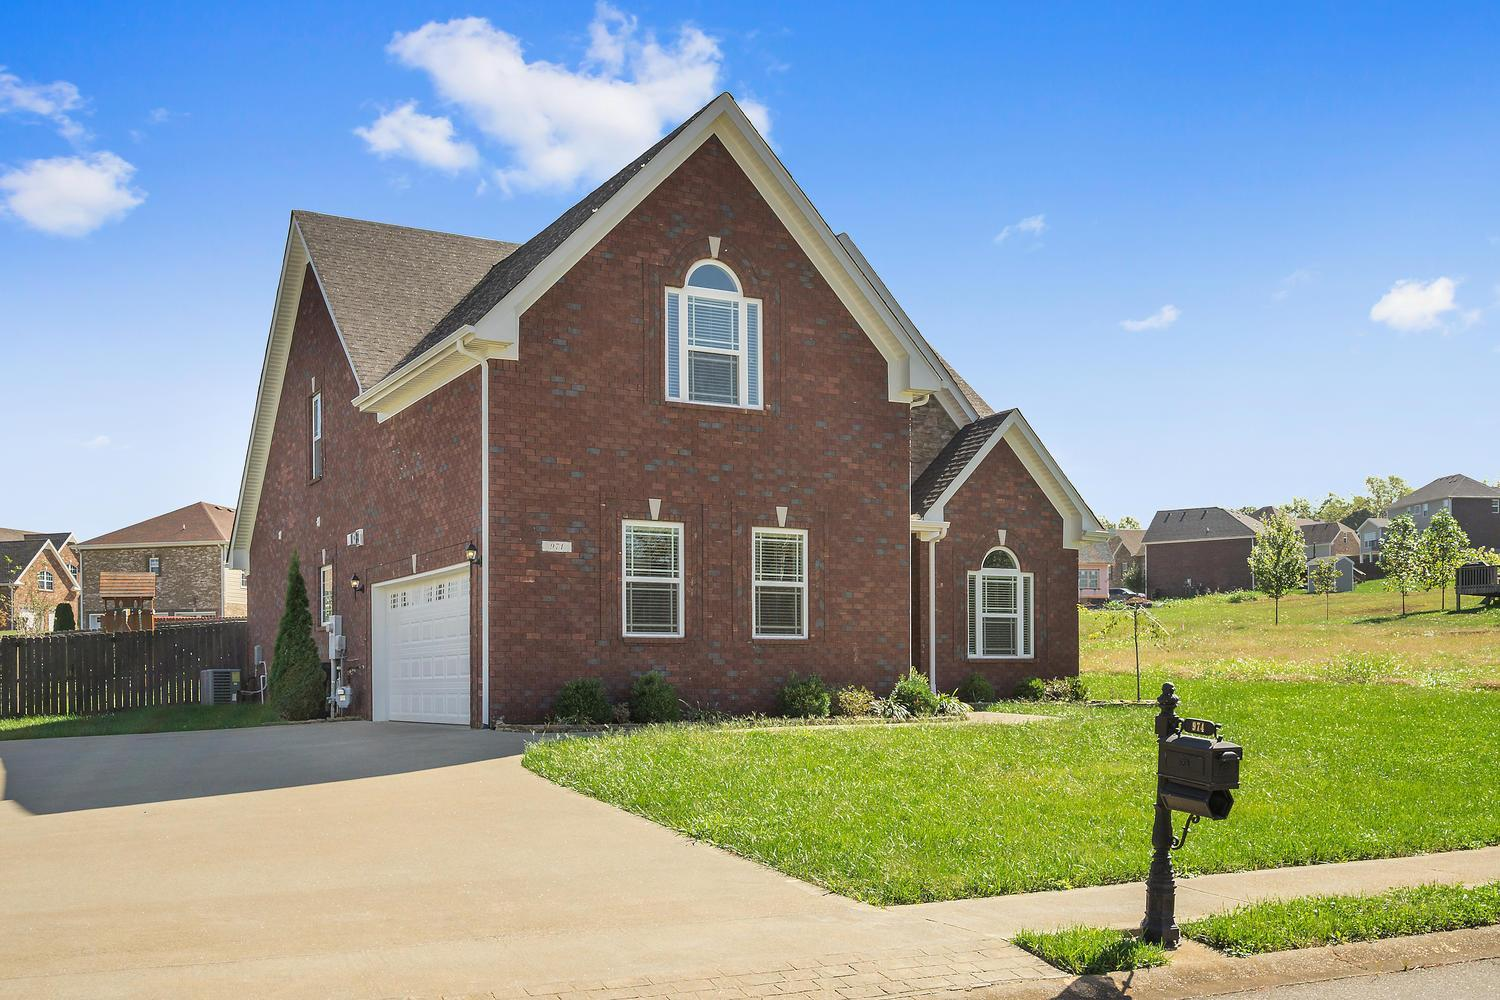 974 Terraceside Cir Clarksville, TN  | MLS# 1872238 | Lisa